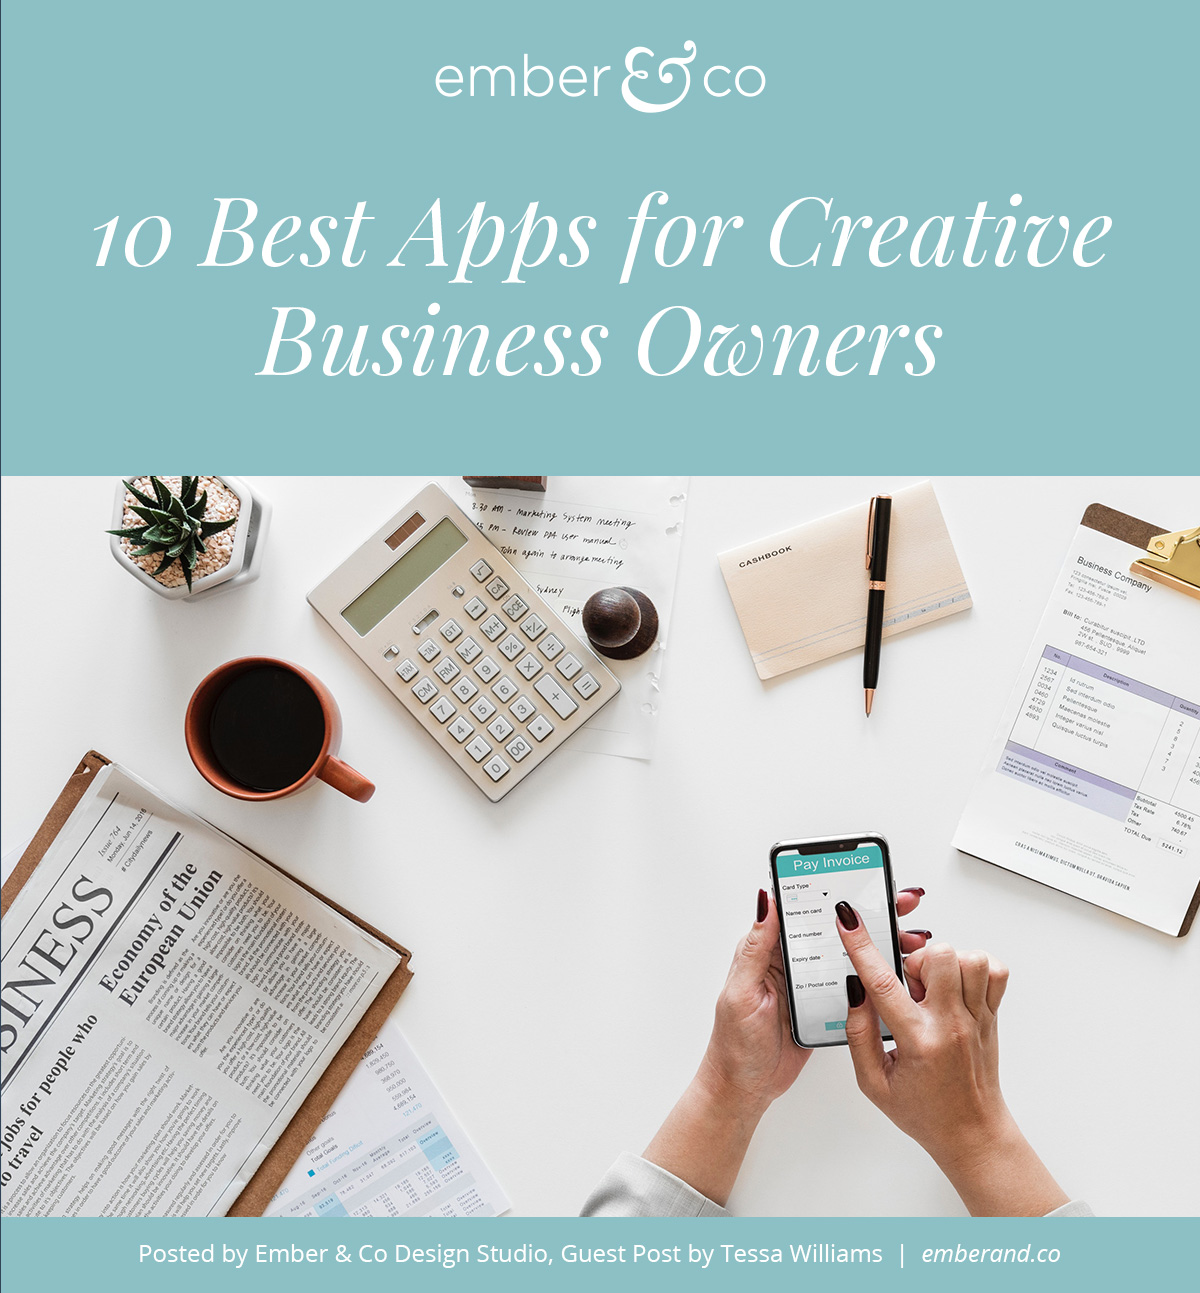 10 Best Apps for Creative Business Owners